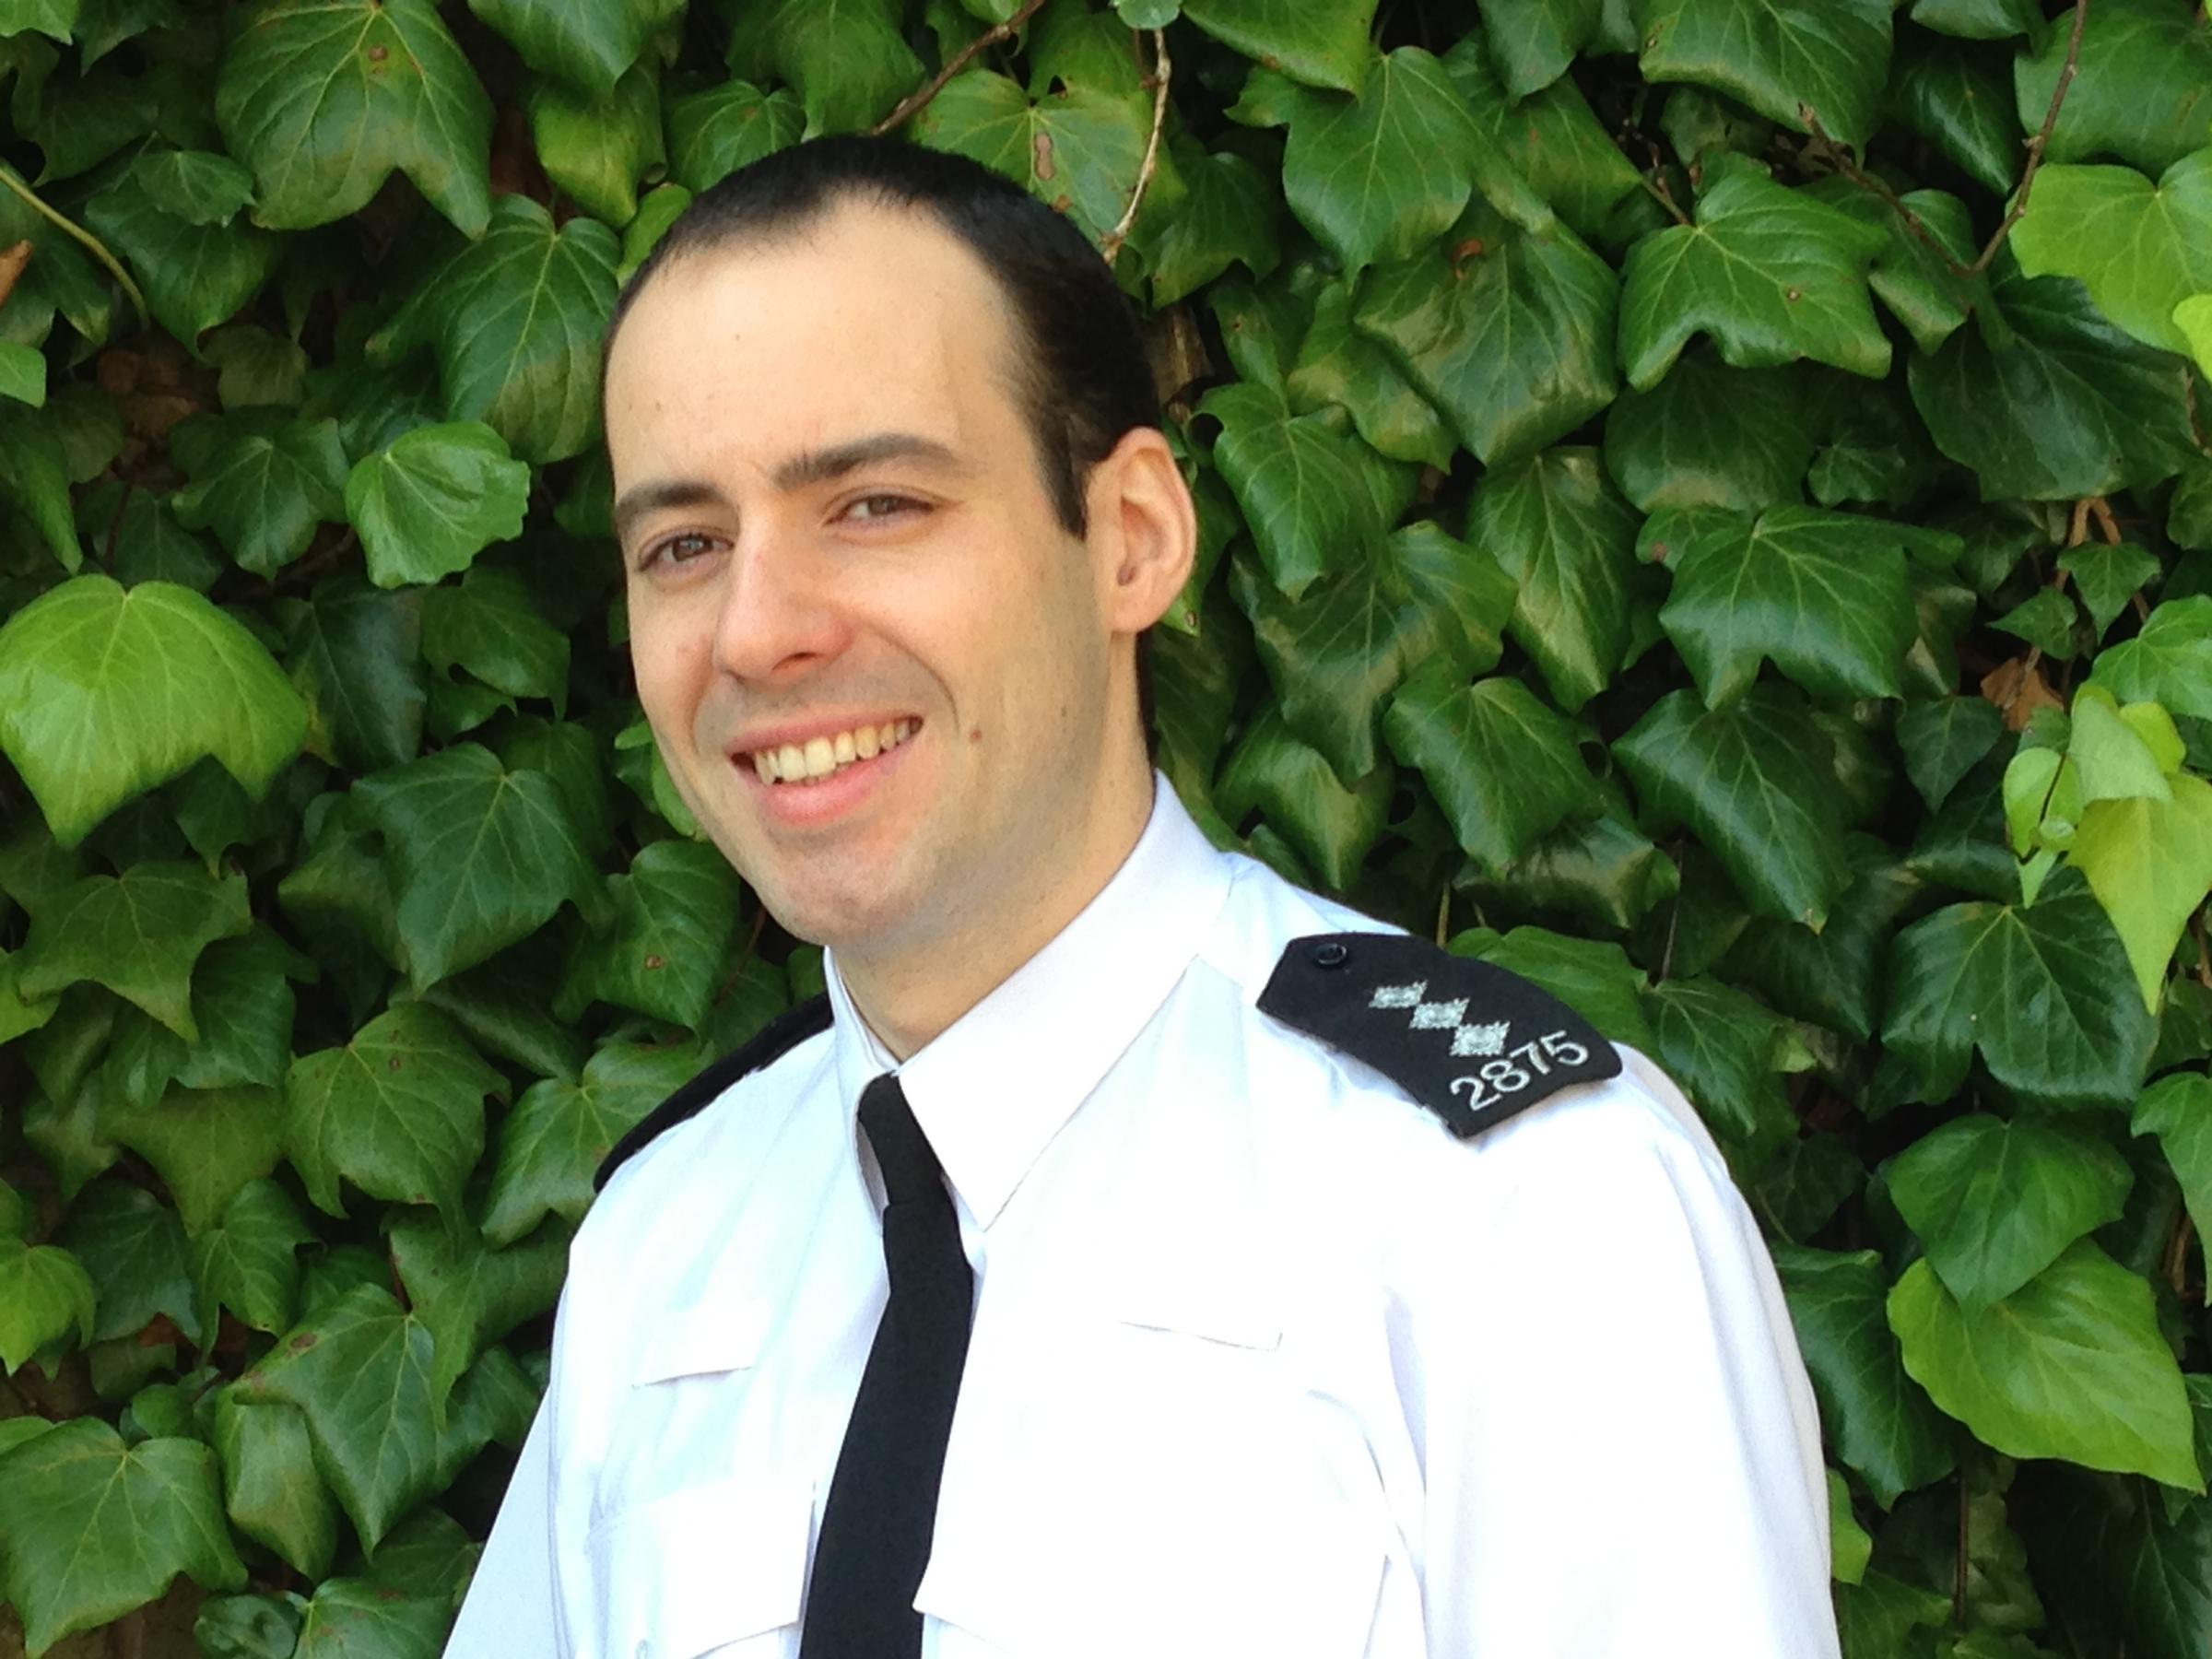 Thurrock chief police officer's bail extended after arrest